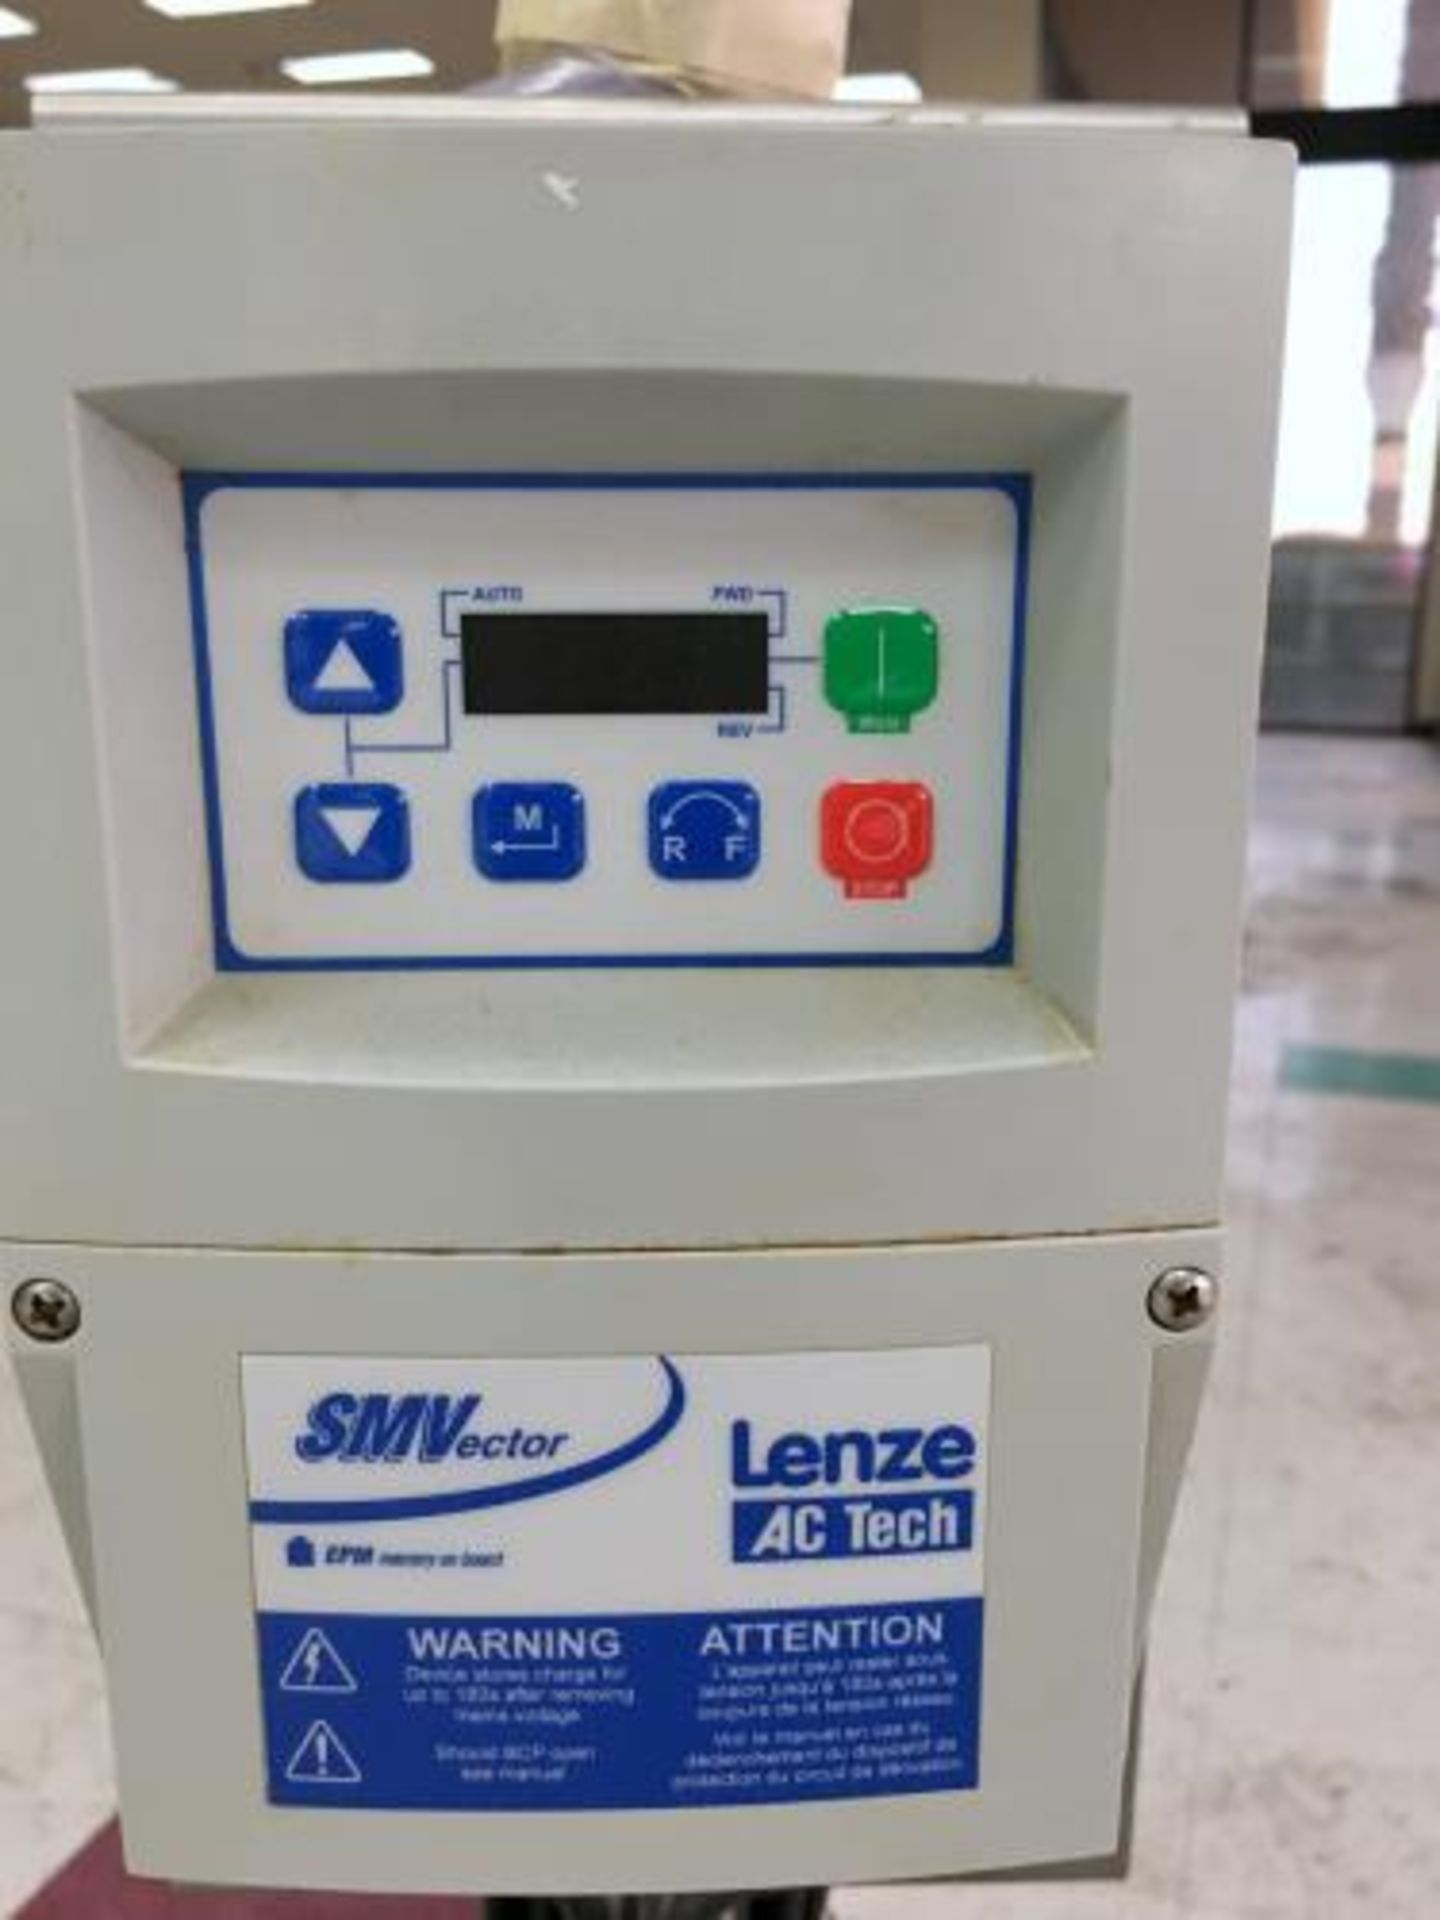 Used-Portable Centrifugal Liquid Transfer Pump. Lenze AC Tech Controller and SS 2 HP Gator Motor. - Image 4 of 7